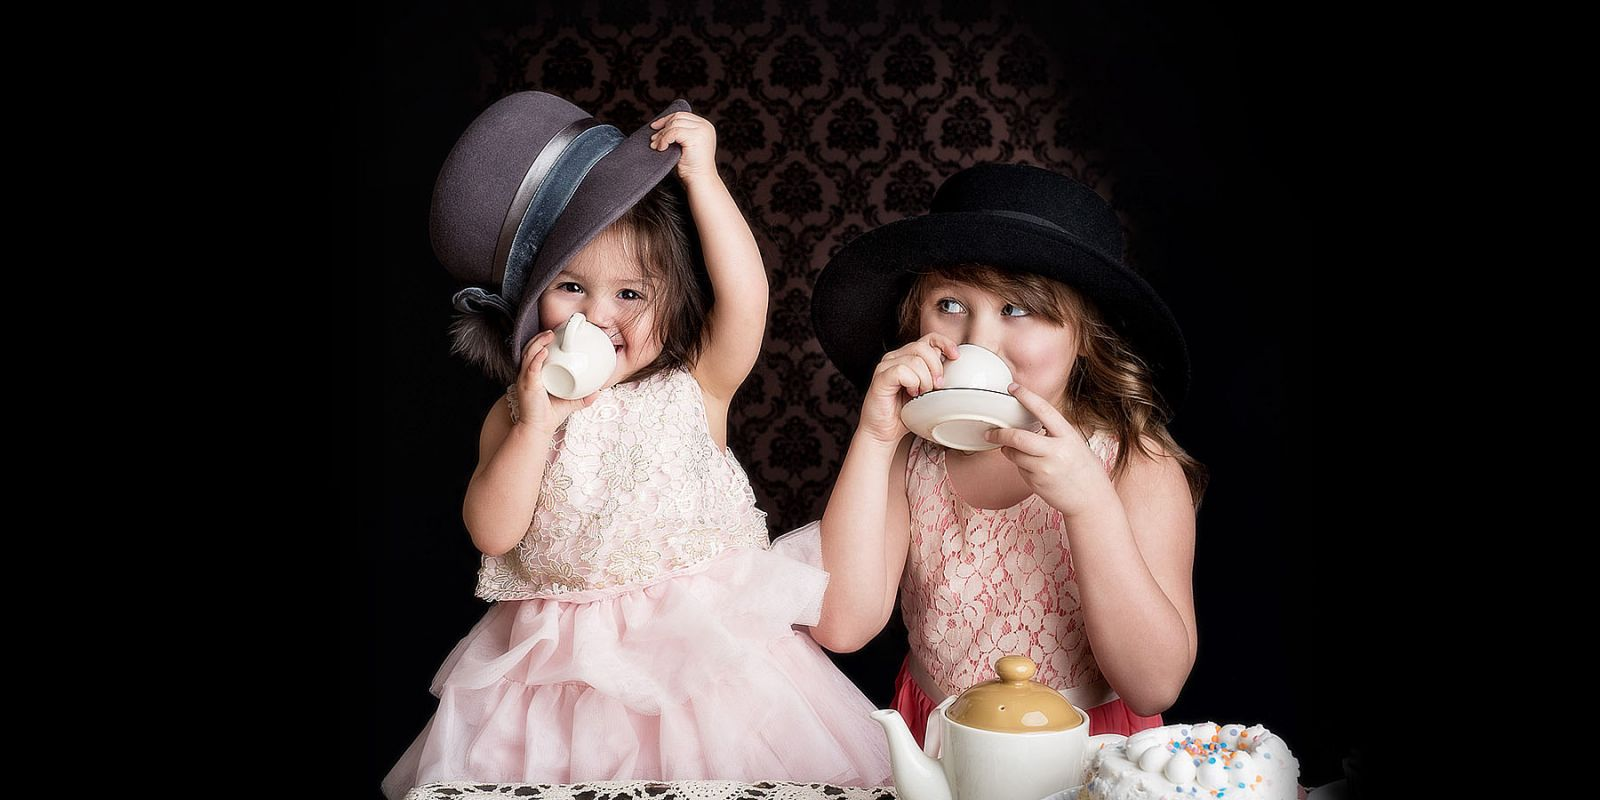 Two little girls playing dress up tea party in a photography studio. Vintage style.